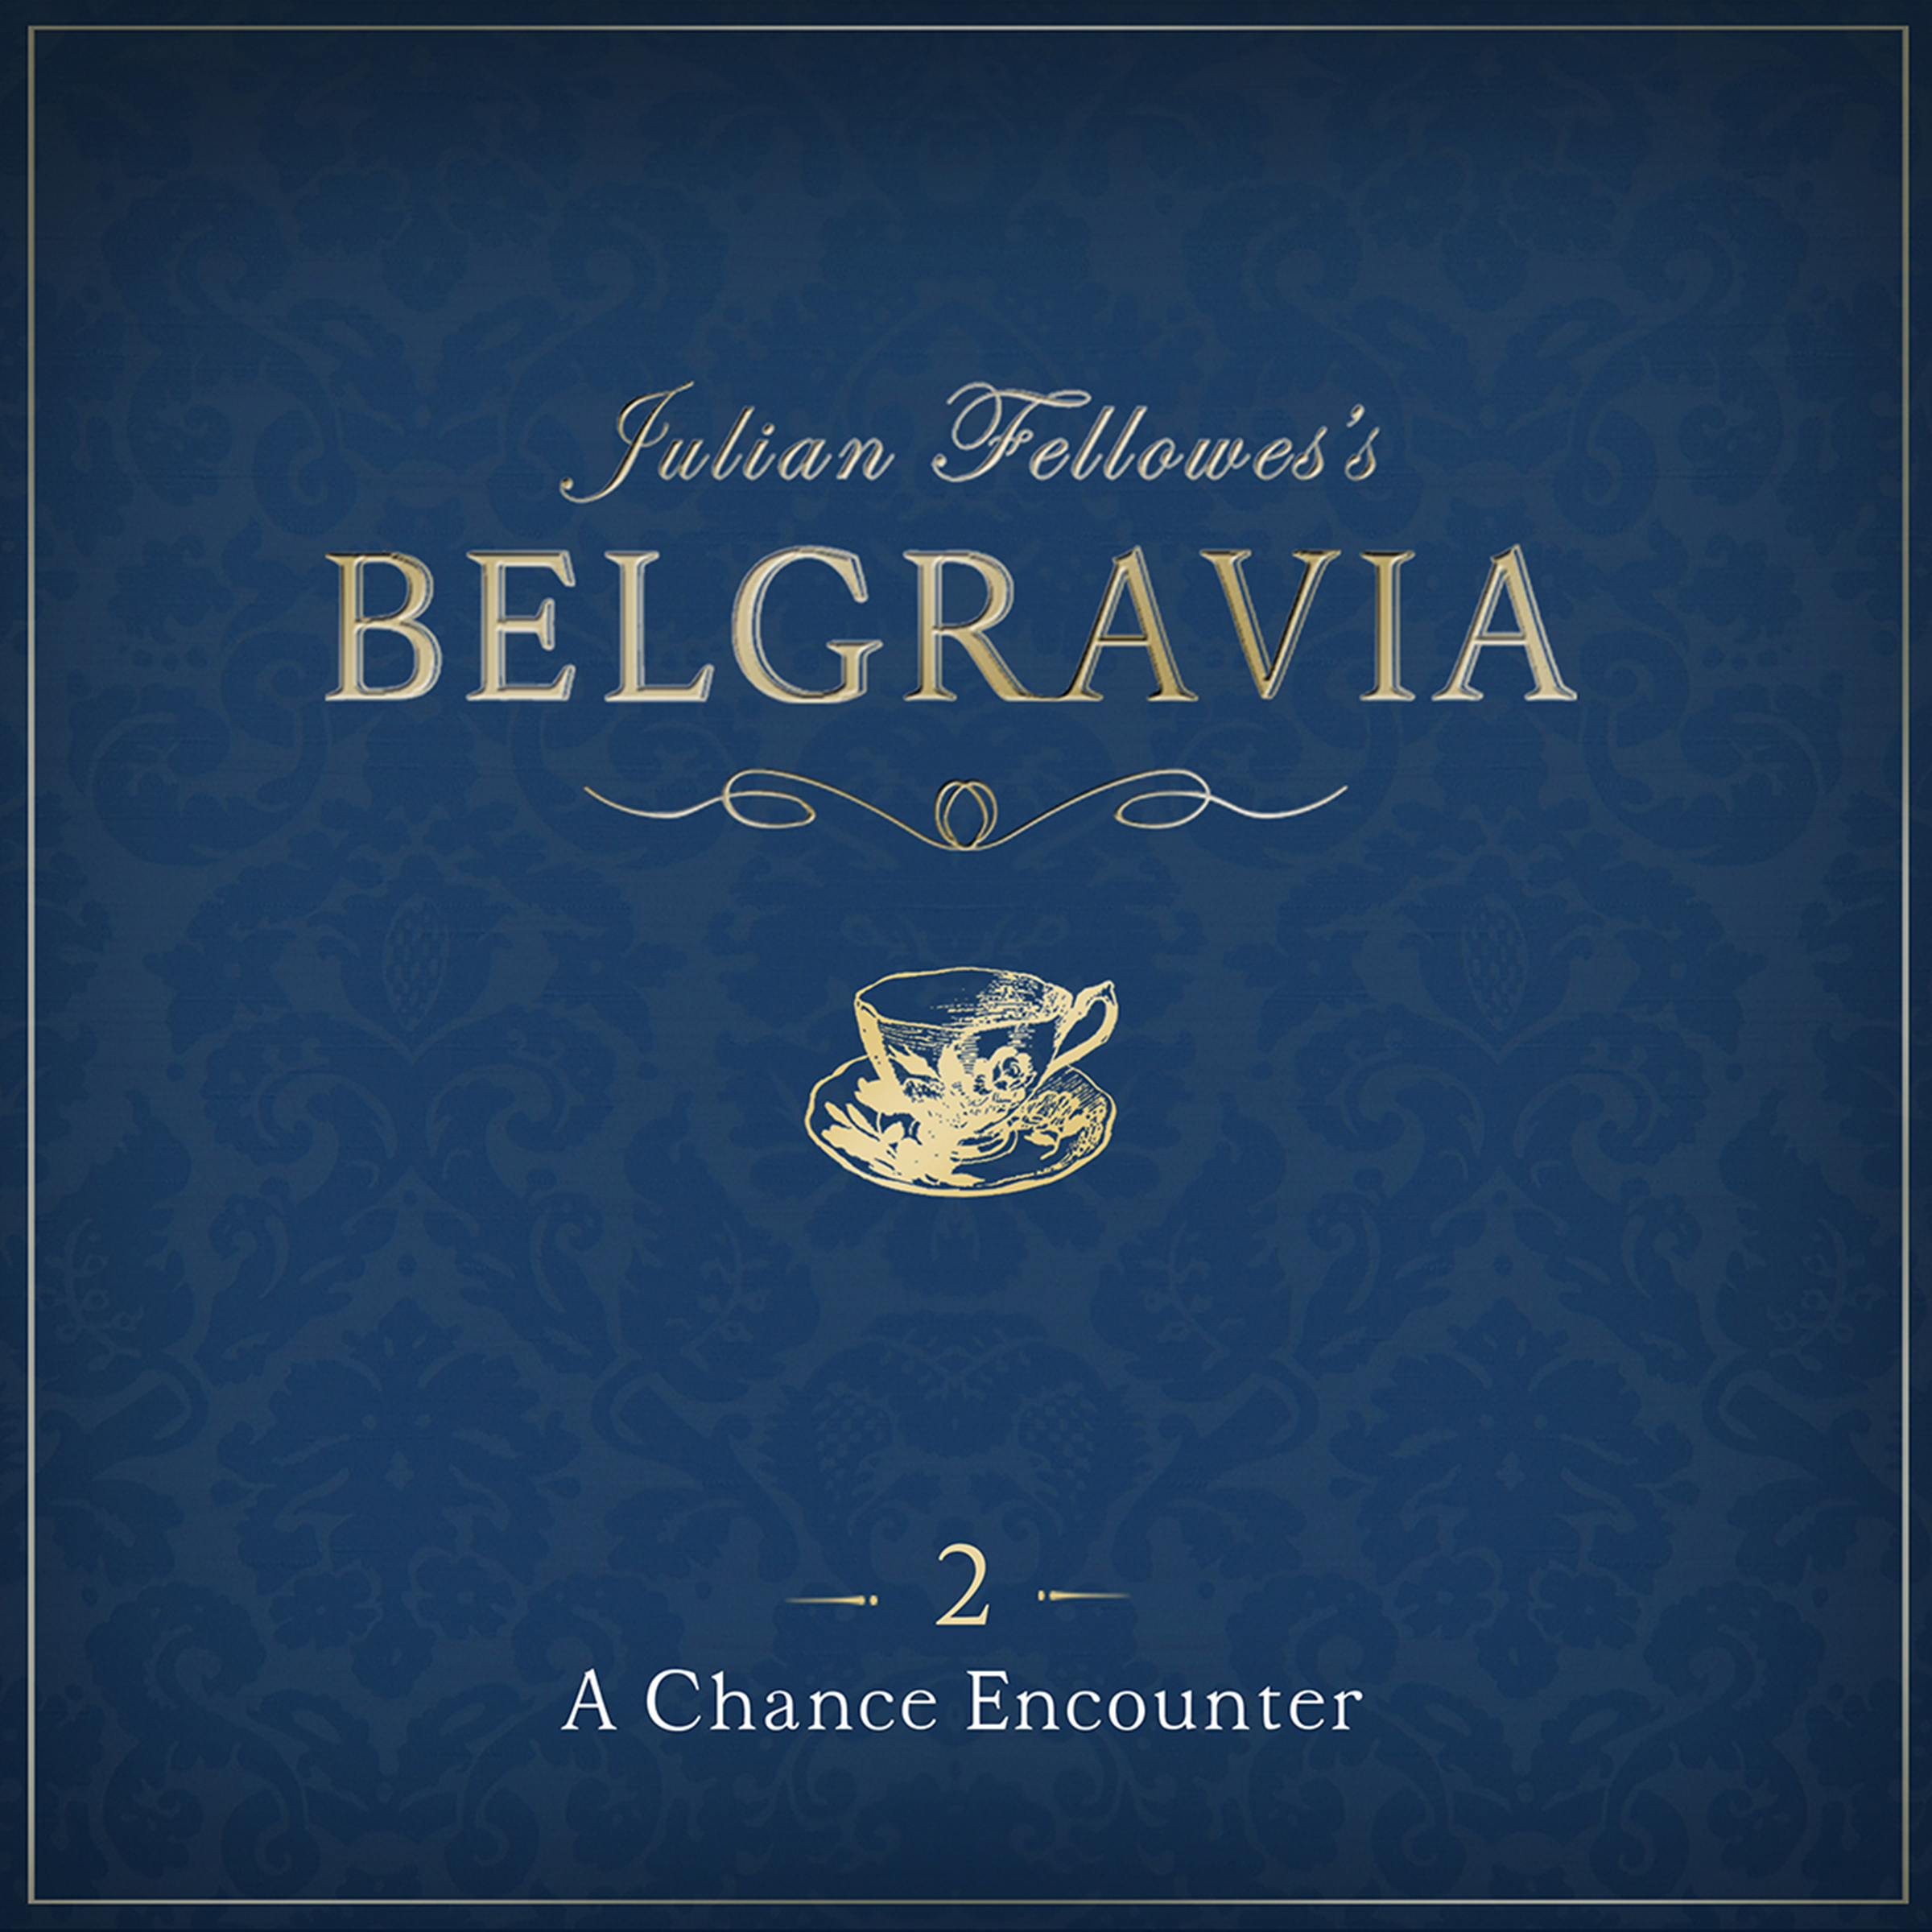 Printable Julian Fellowes's Belgravia Episode 2: A Chance Encounter Audiobook Cover Art